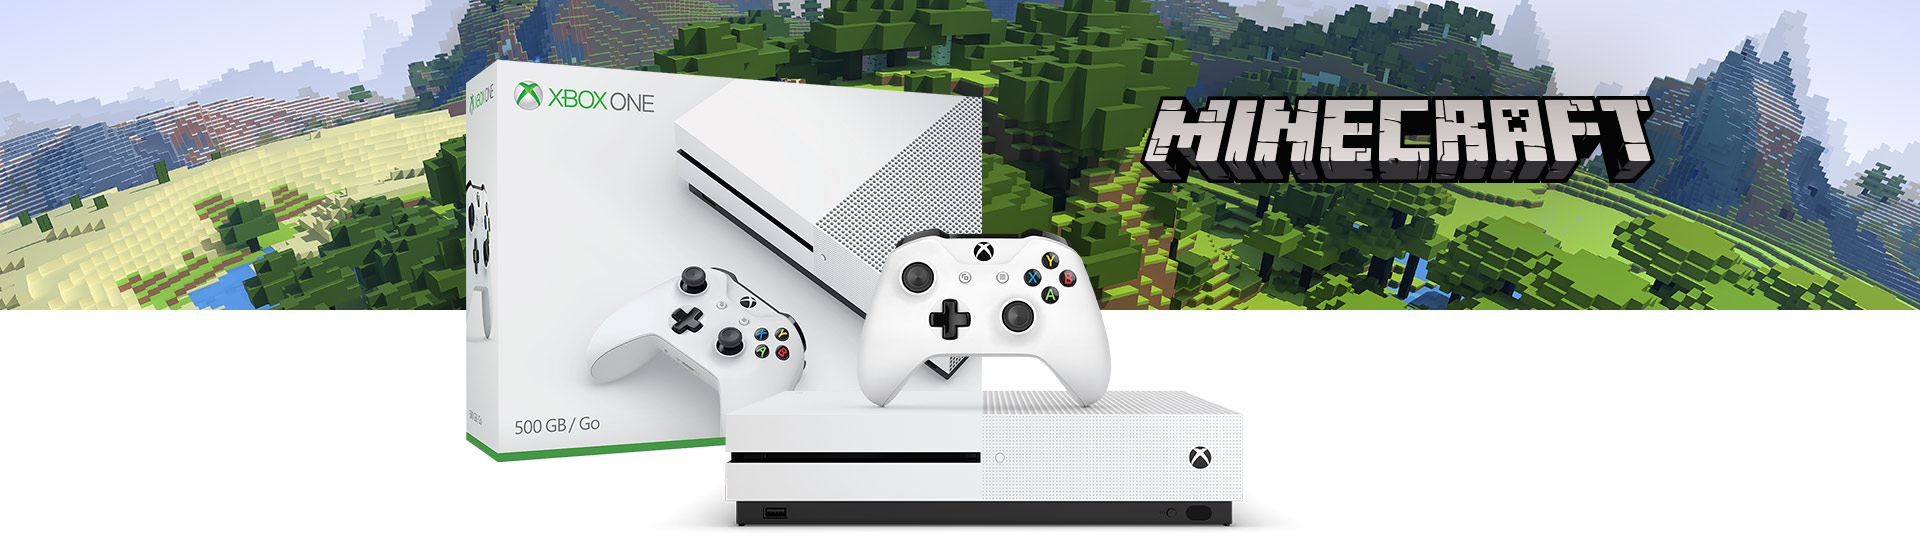 Xbox One S Minecraft Complete Adventure Bundle (500GB)